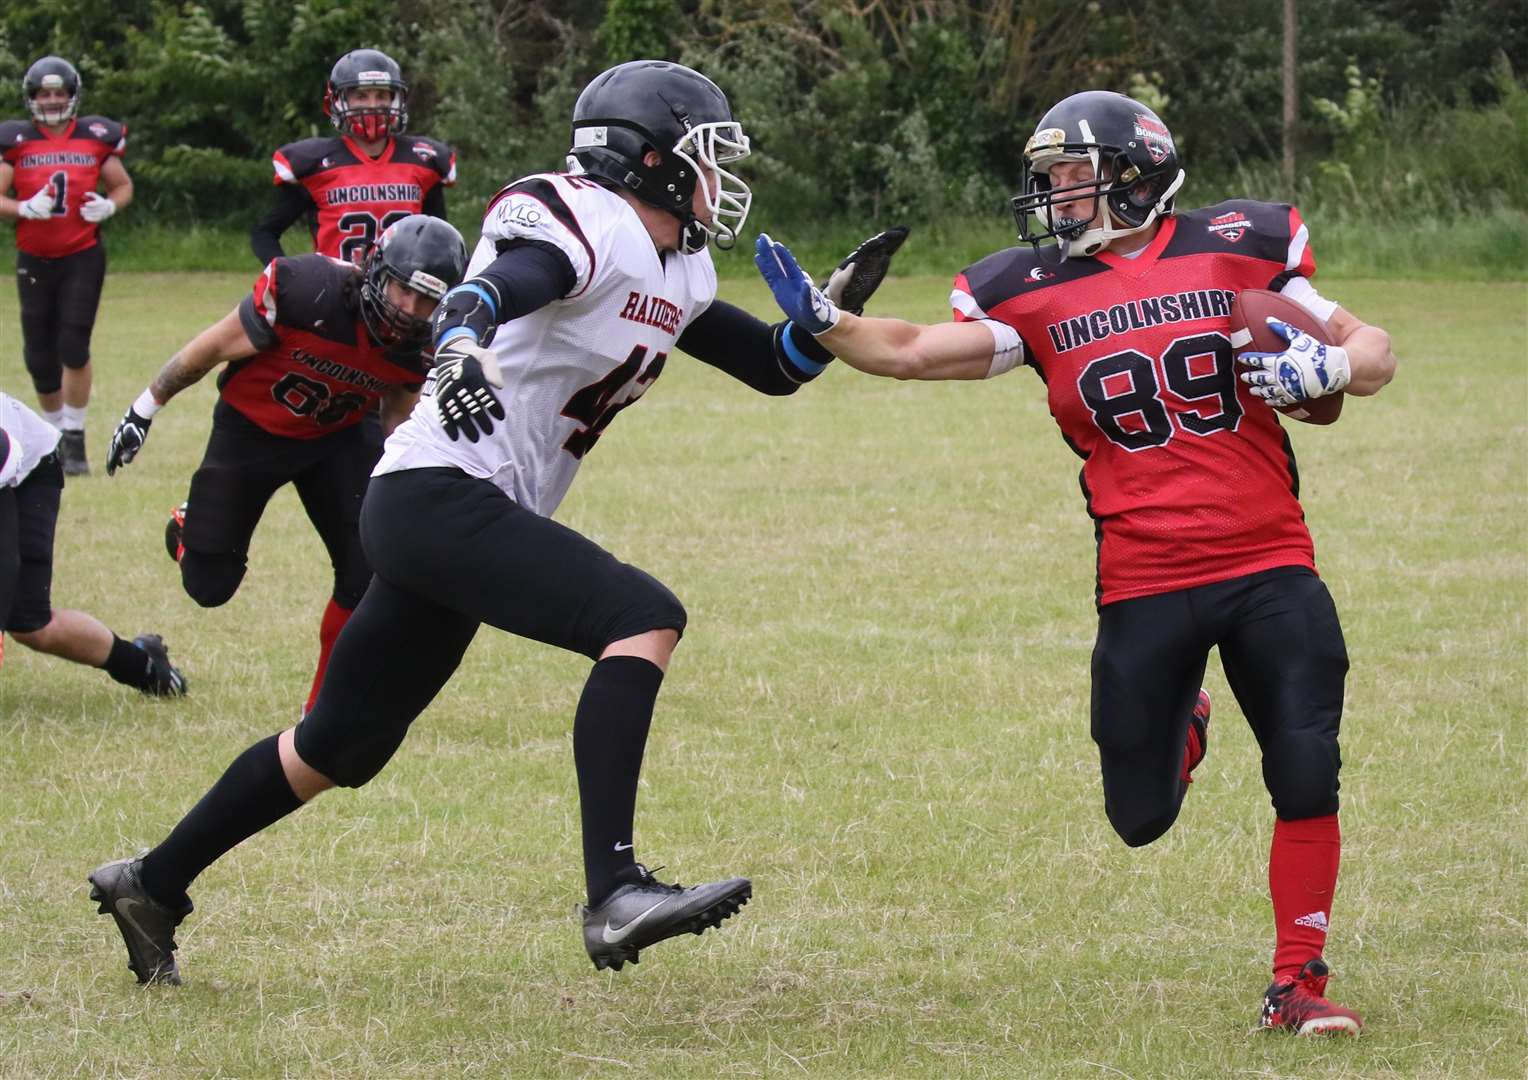 Nathan Haymer-Bates (right) in action for the Bombers. Photo: Mike Lincoln (linxpix.com) (3473232)